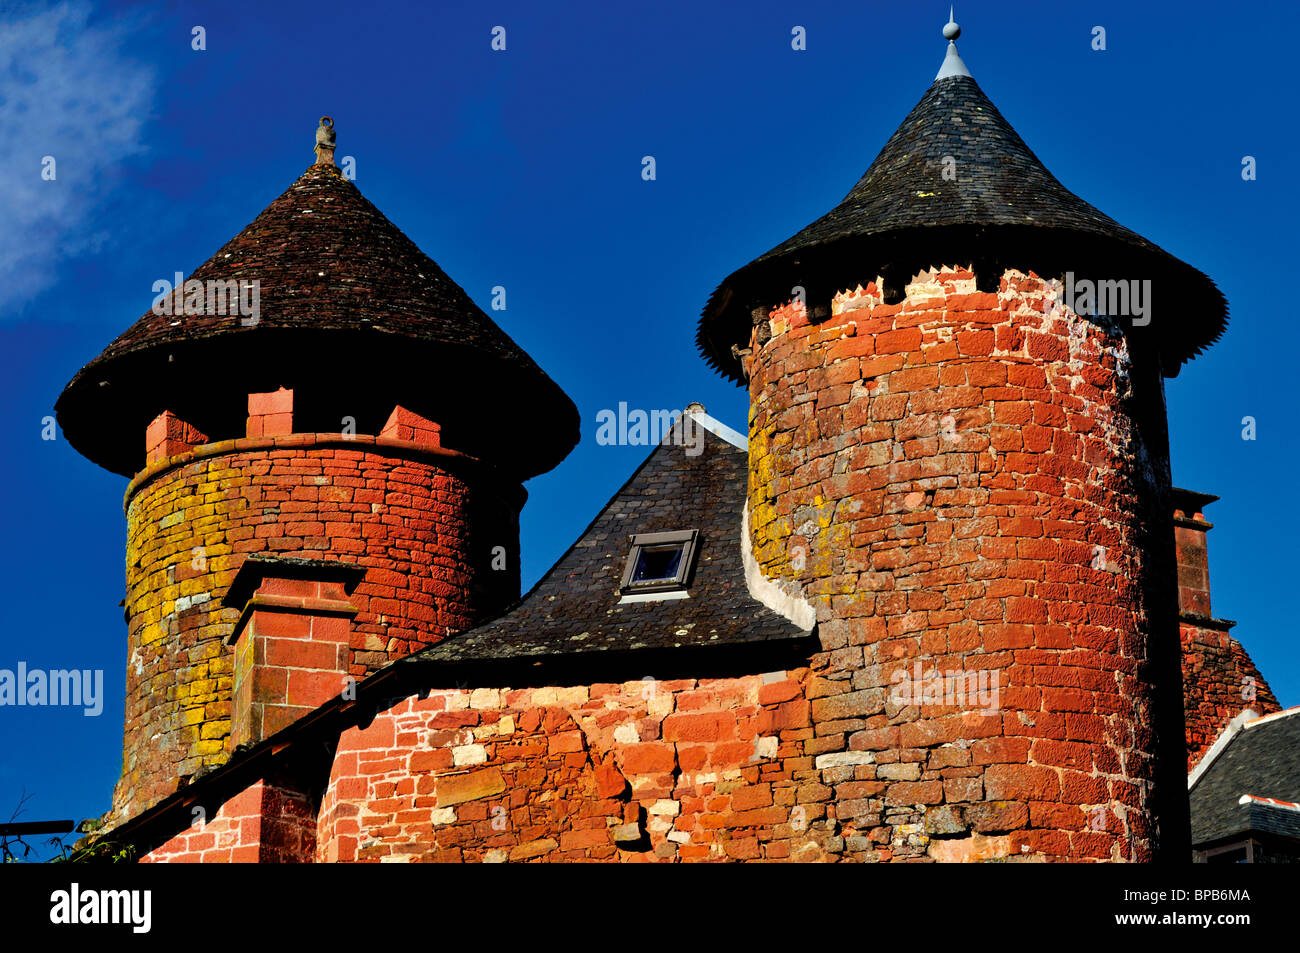 Frankreich: Herrenhaus in Collonges-la-Rouge Stockbild